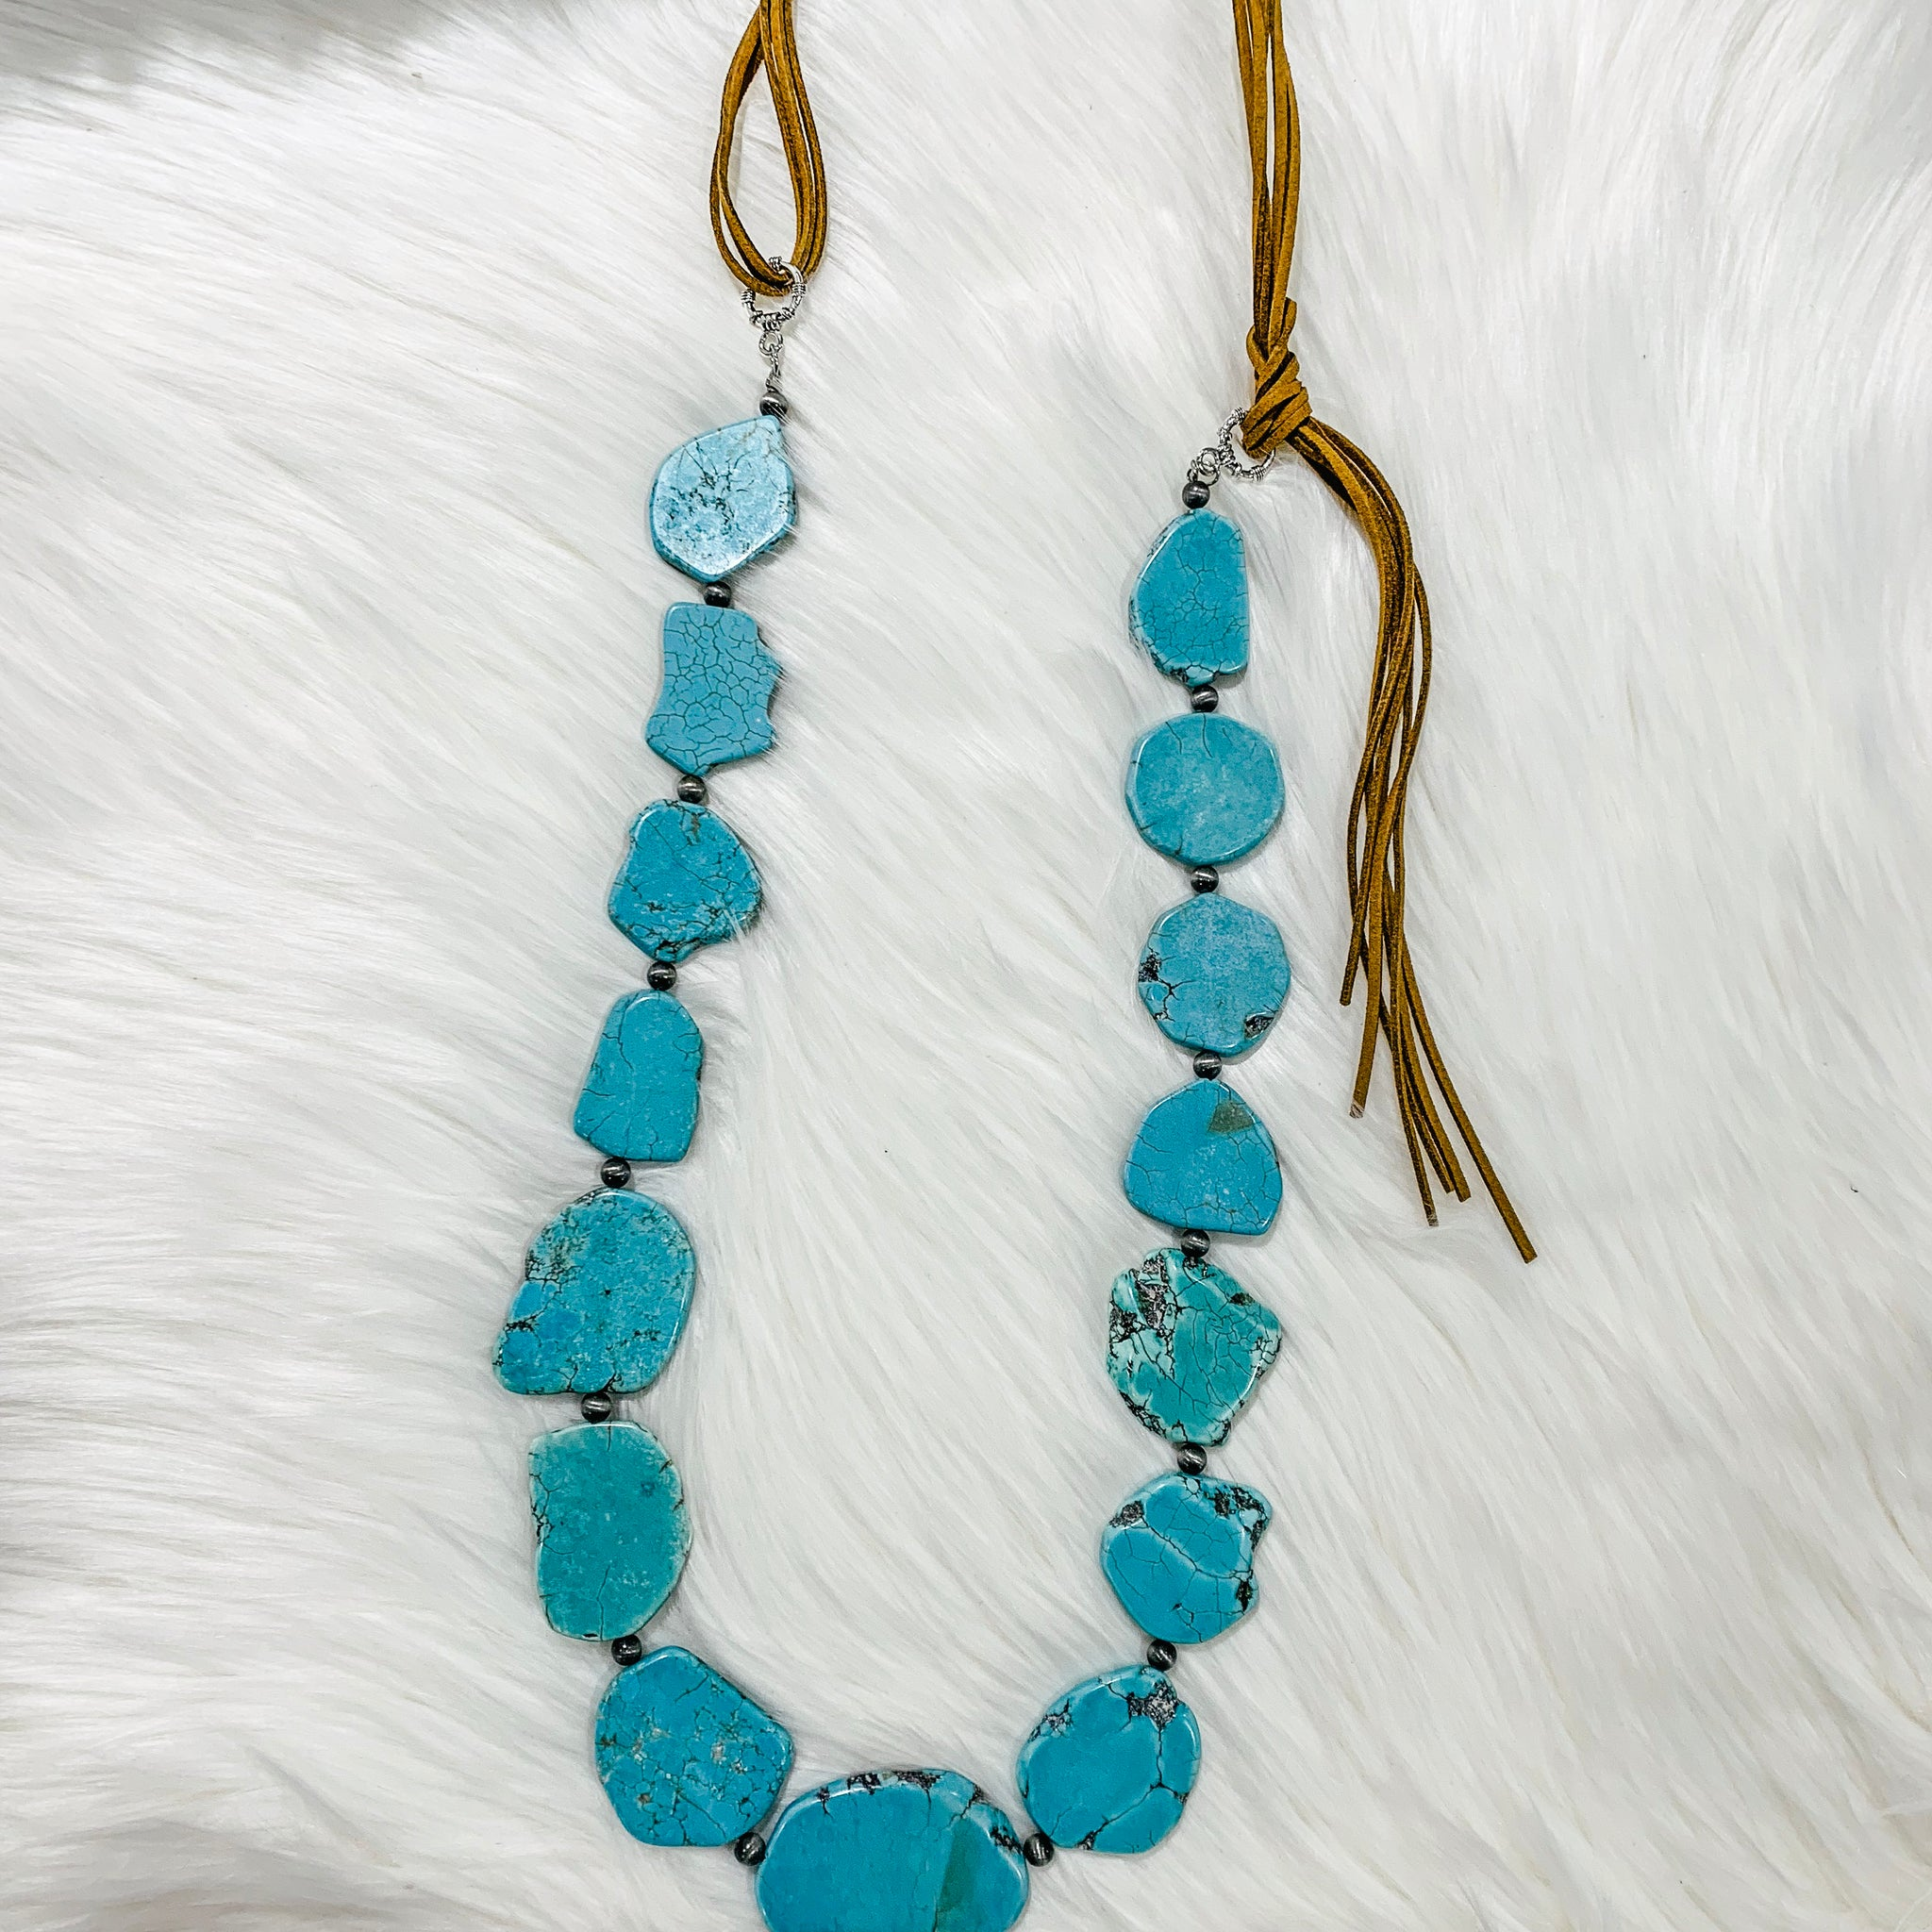 Allex Turquoise Necklace